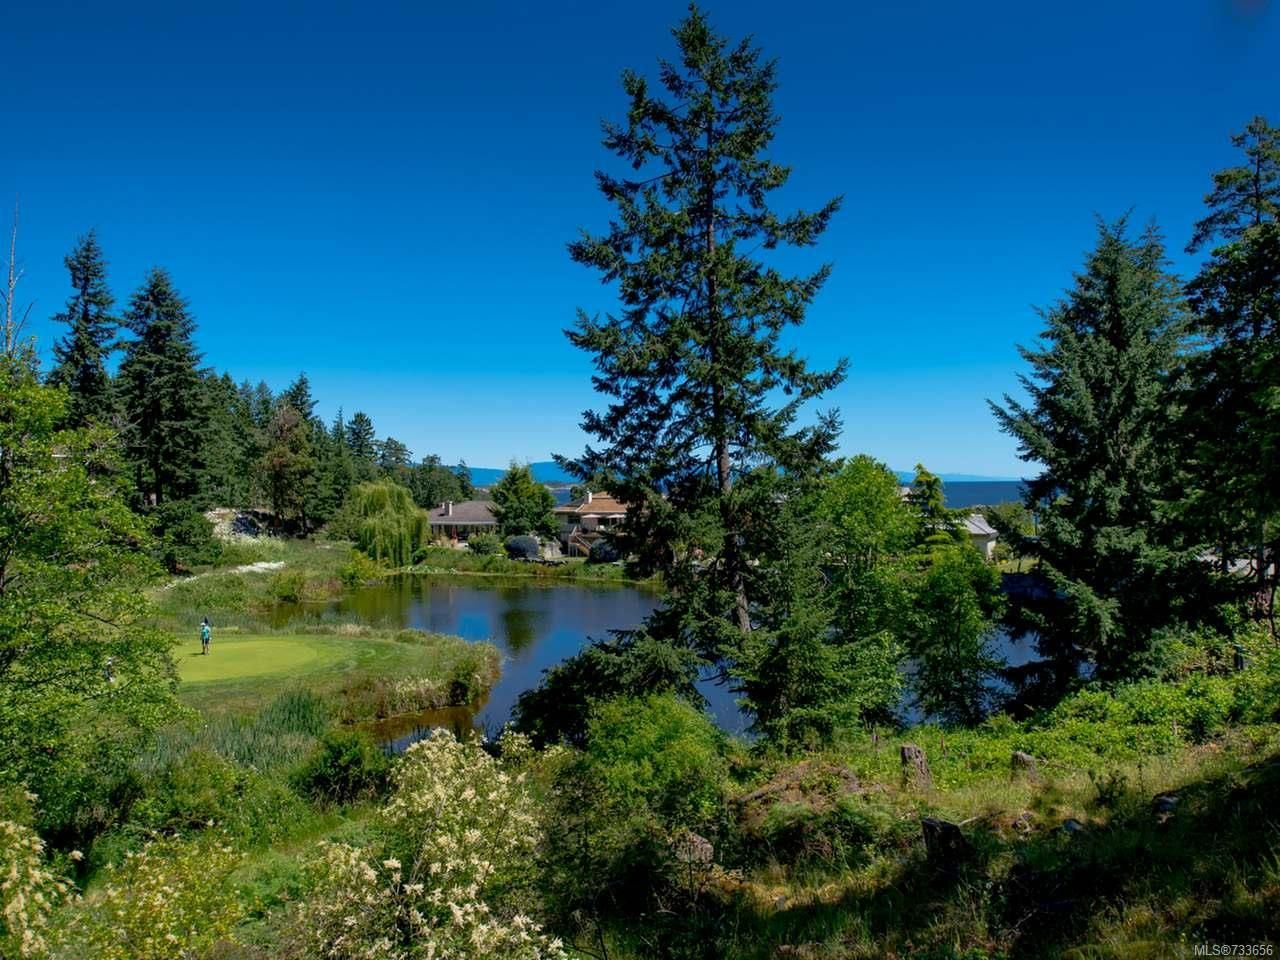 Main Photo: LT 41 Andover Rd in NANOOSE BAY: PQ Fairwinds Land for sale (Parksville/Qualicum)  : MLS®# 733656